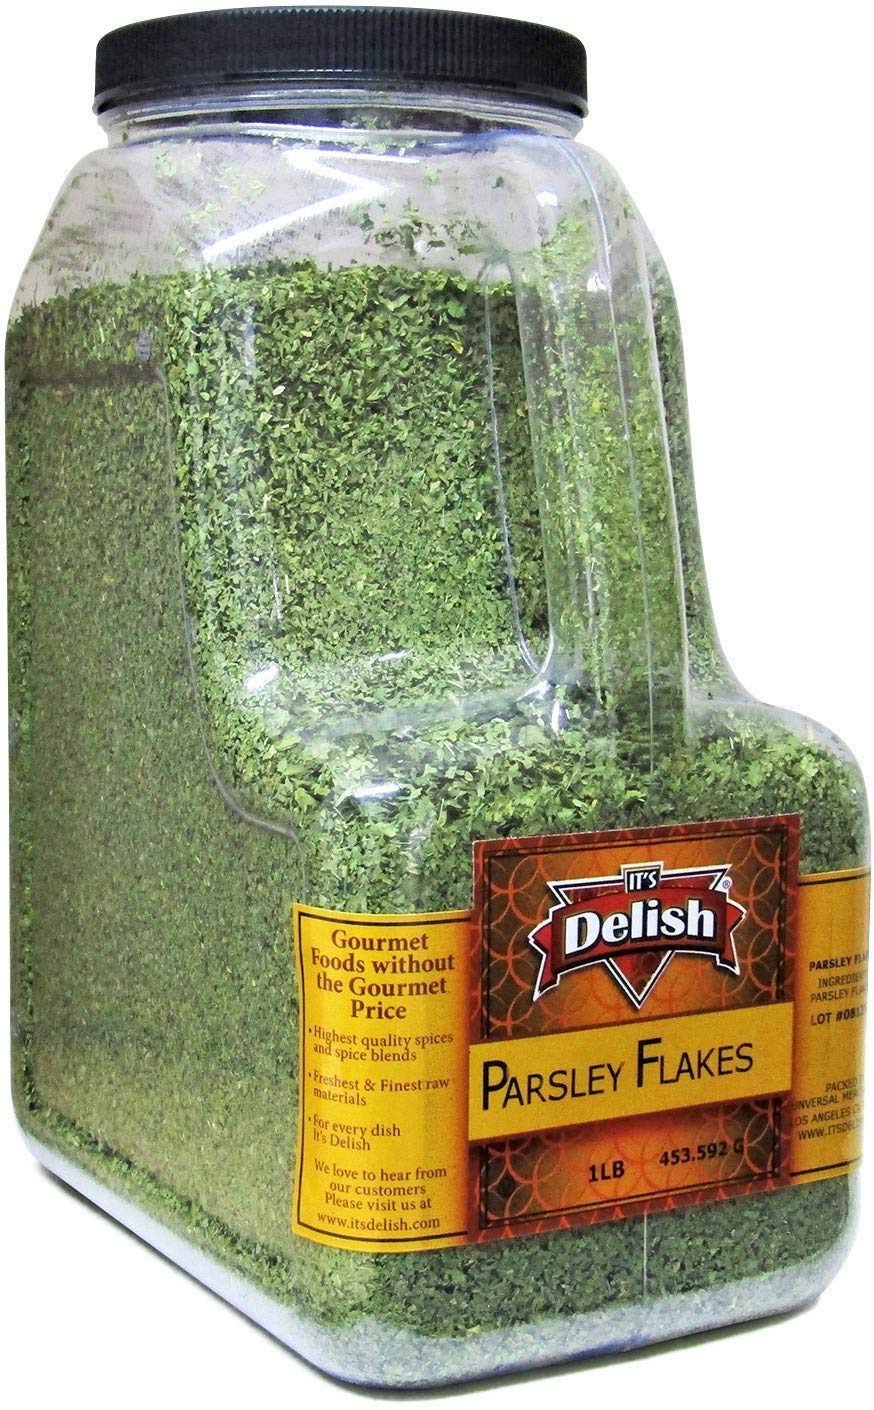 Dried Parsley Flakes Store by Its Delish Cheap – à Jug Size Gallon 1 LB